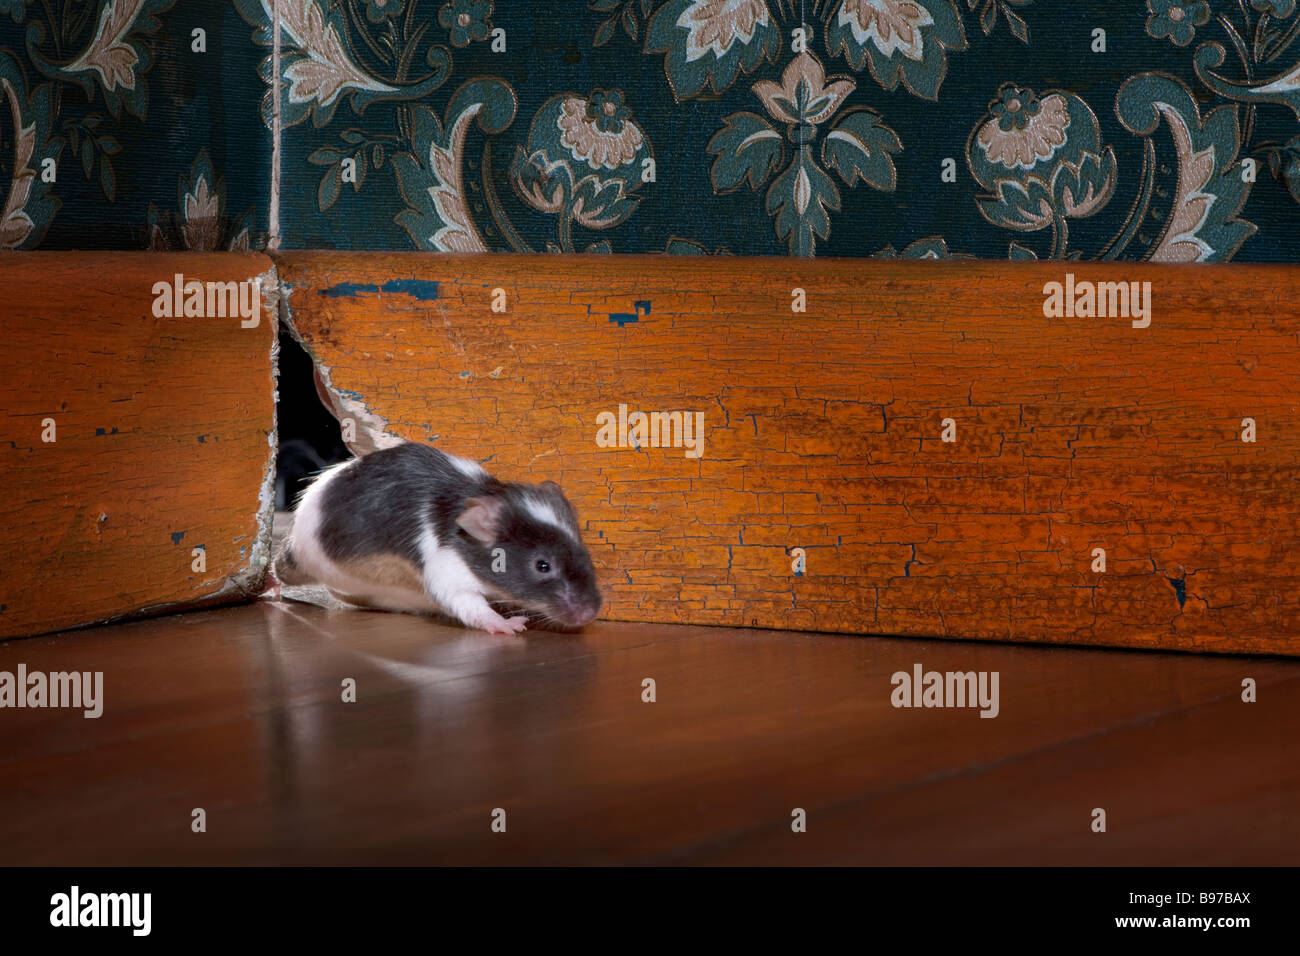 mouse coming out ot her hole in a luxury old fashioned room - Stock Image